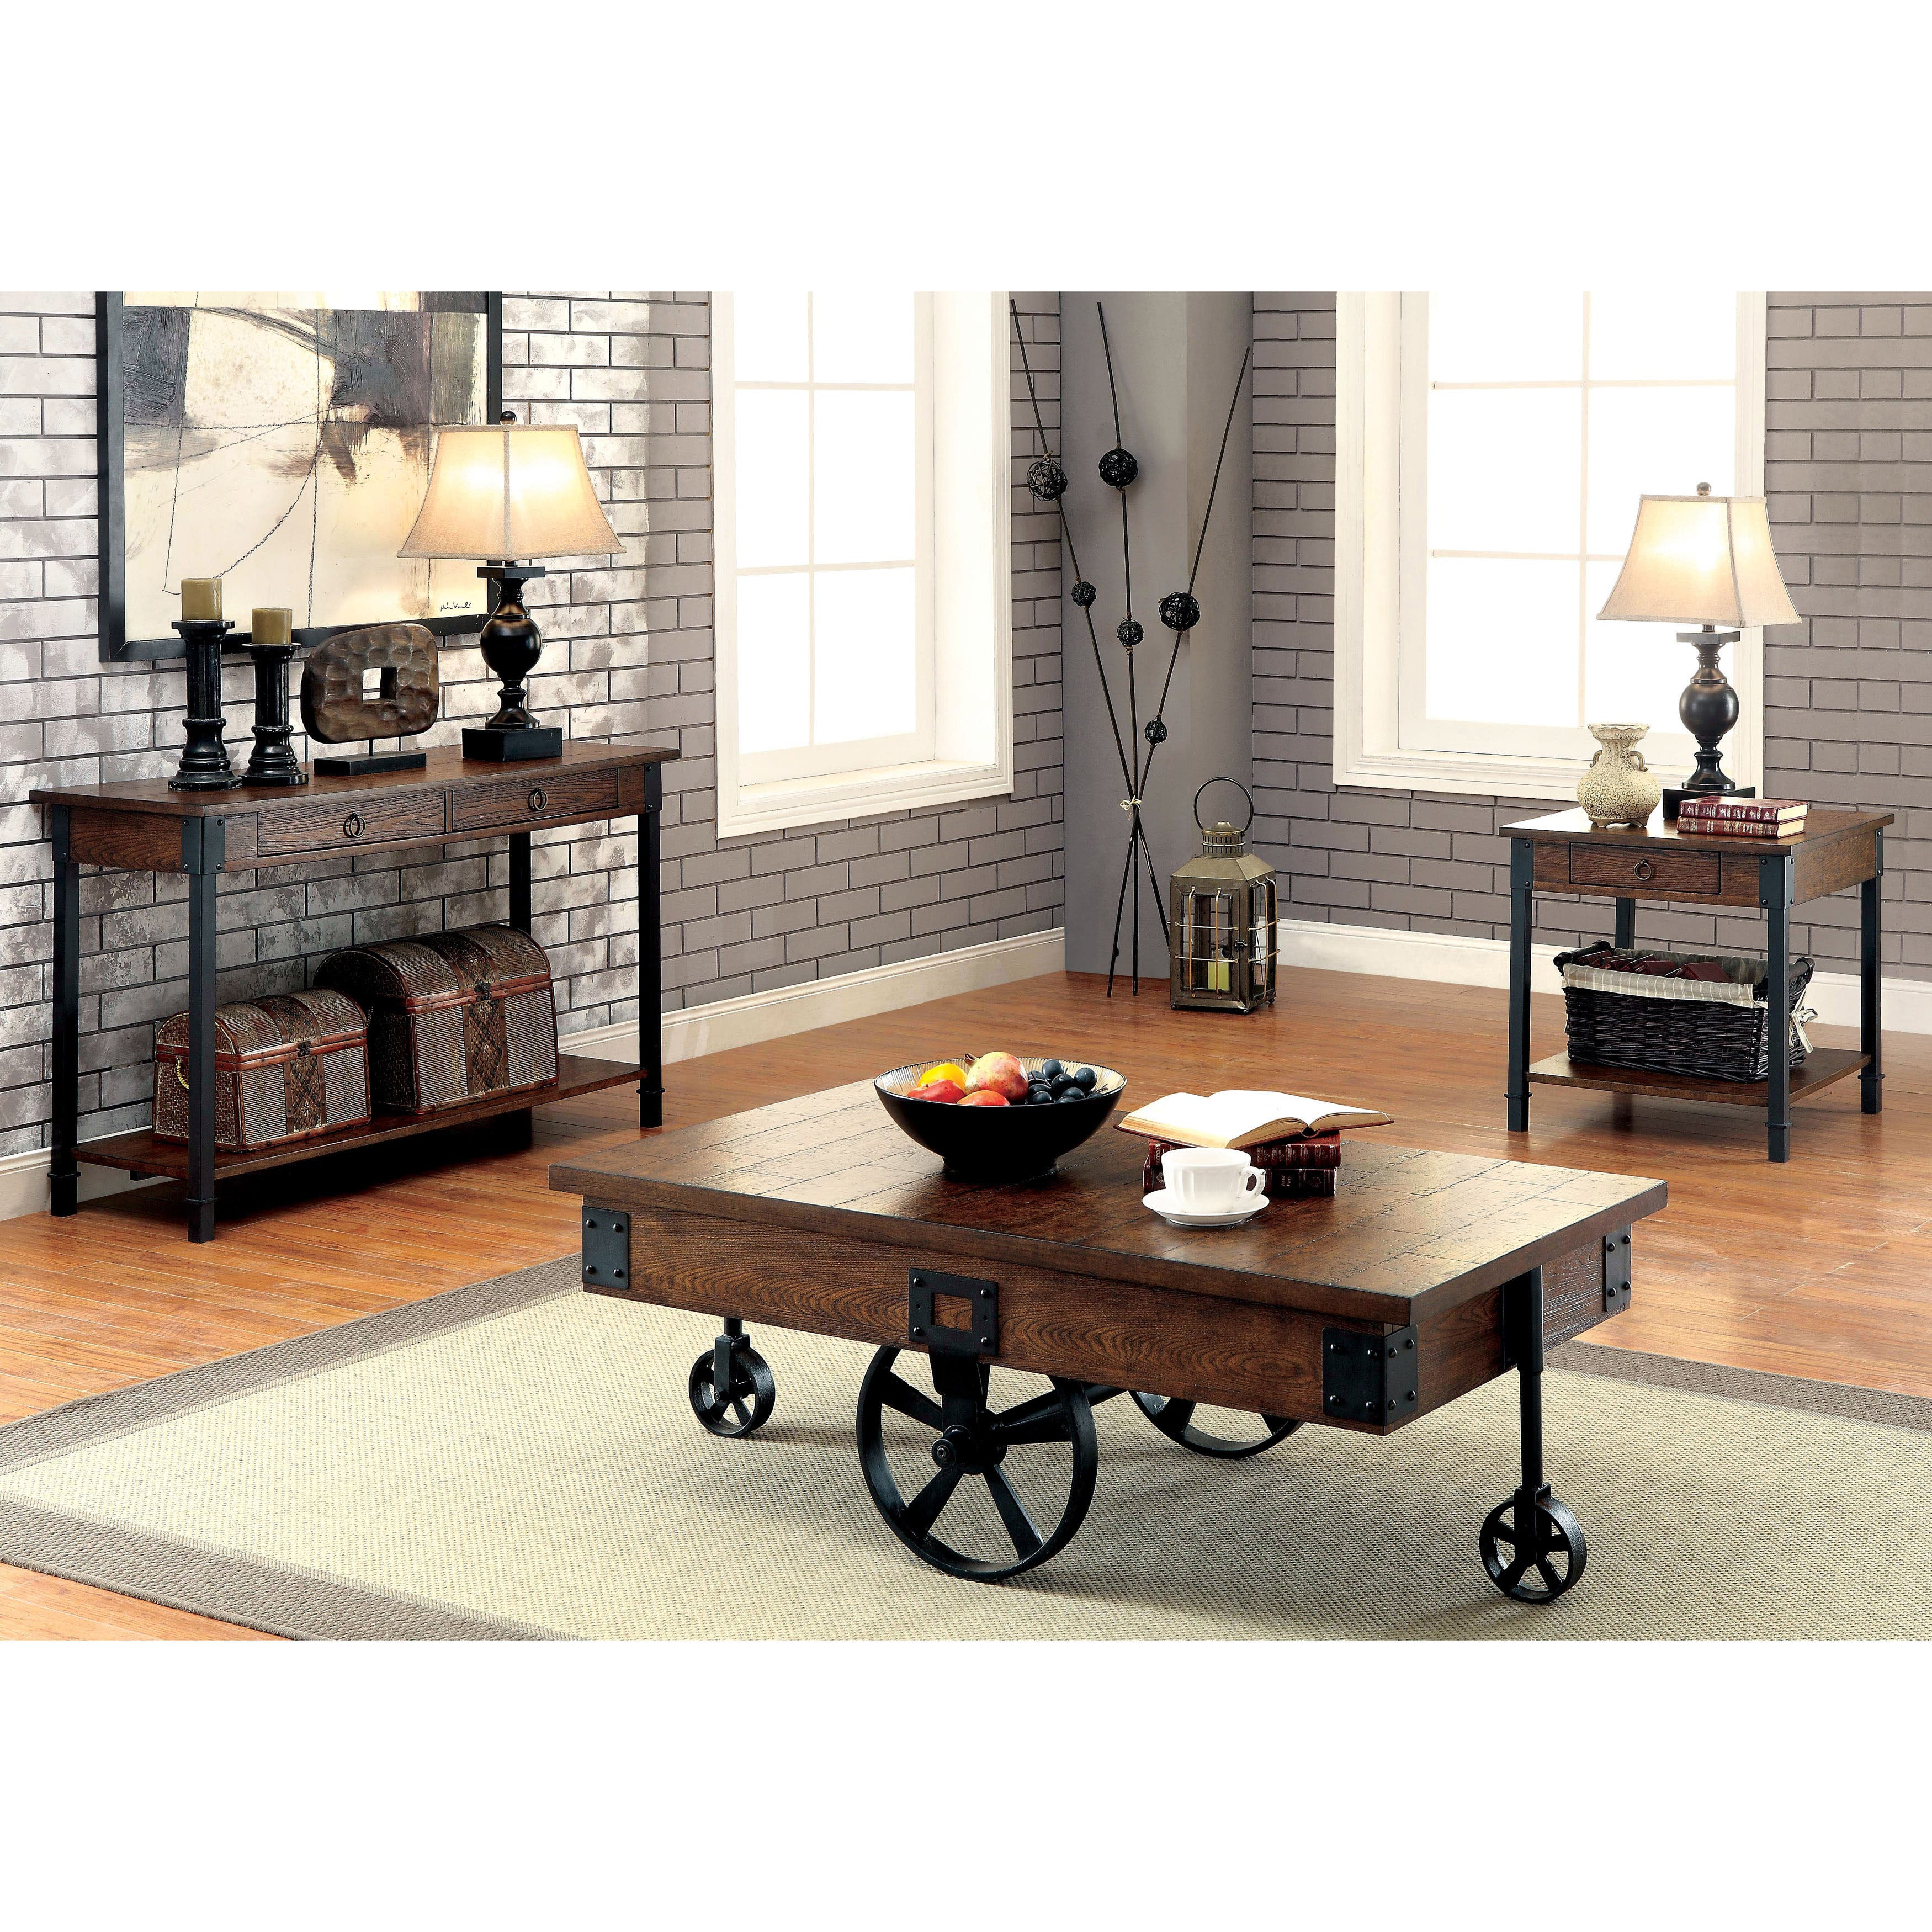 Online Furniture Deals: Buy Coffee, Console, Sofa & End Tables Online At Overstock